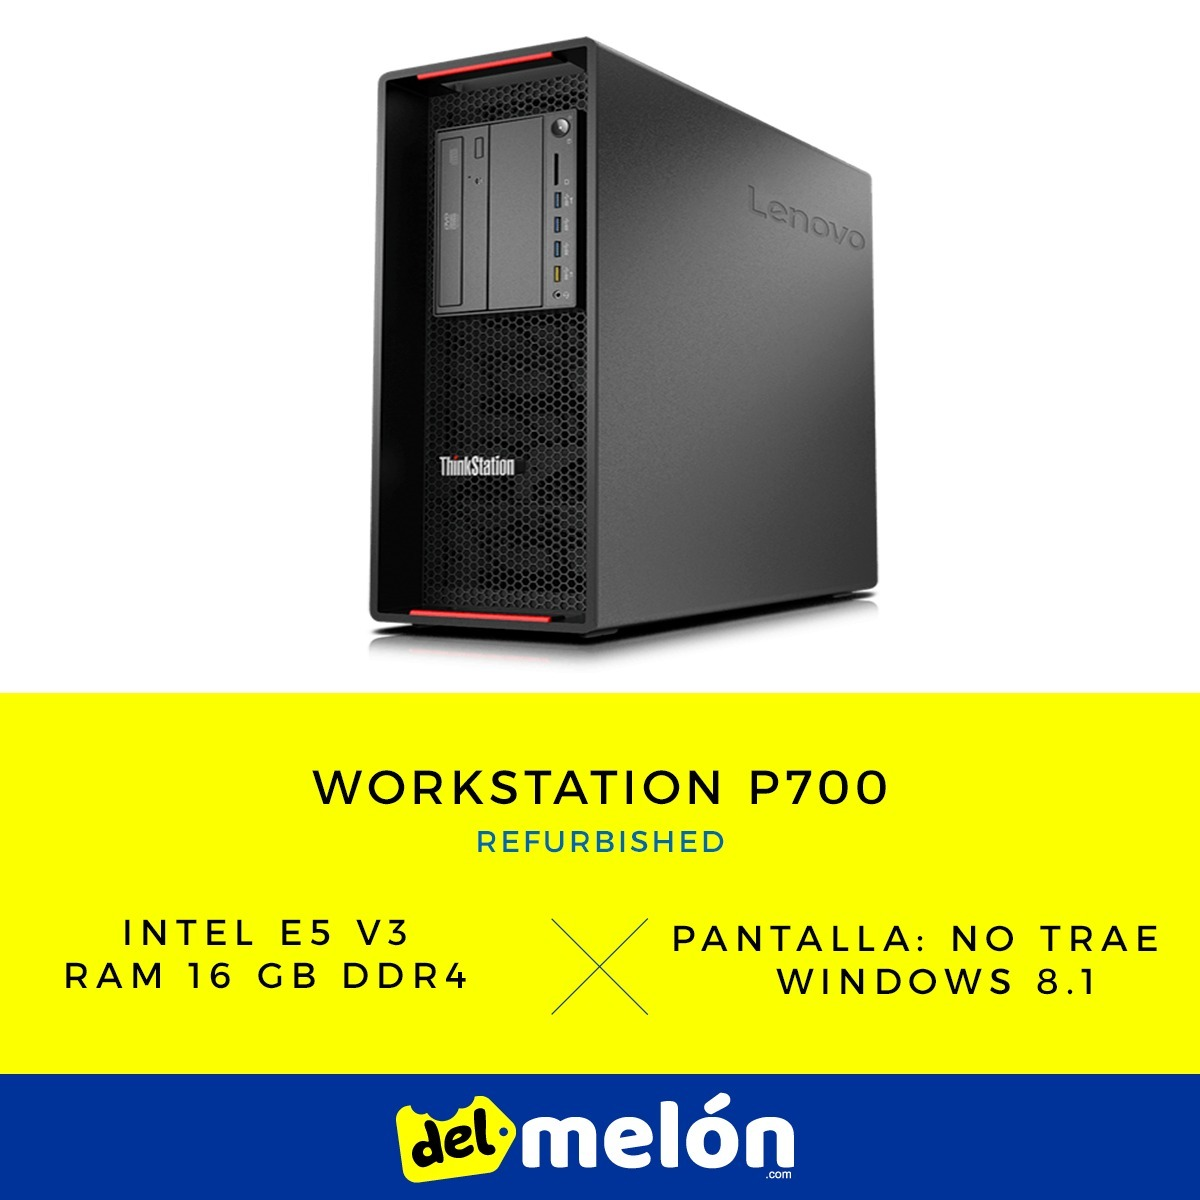 LENOVO THINKSTATION P700 DRIVER PC